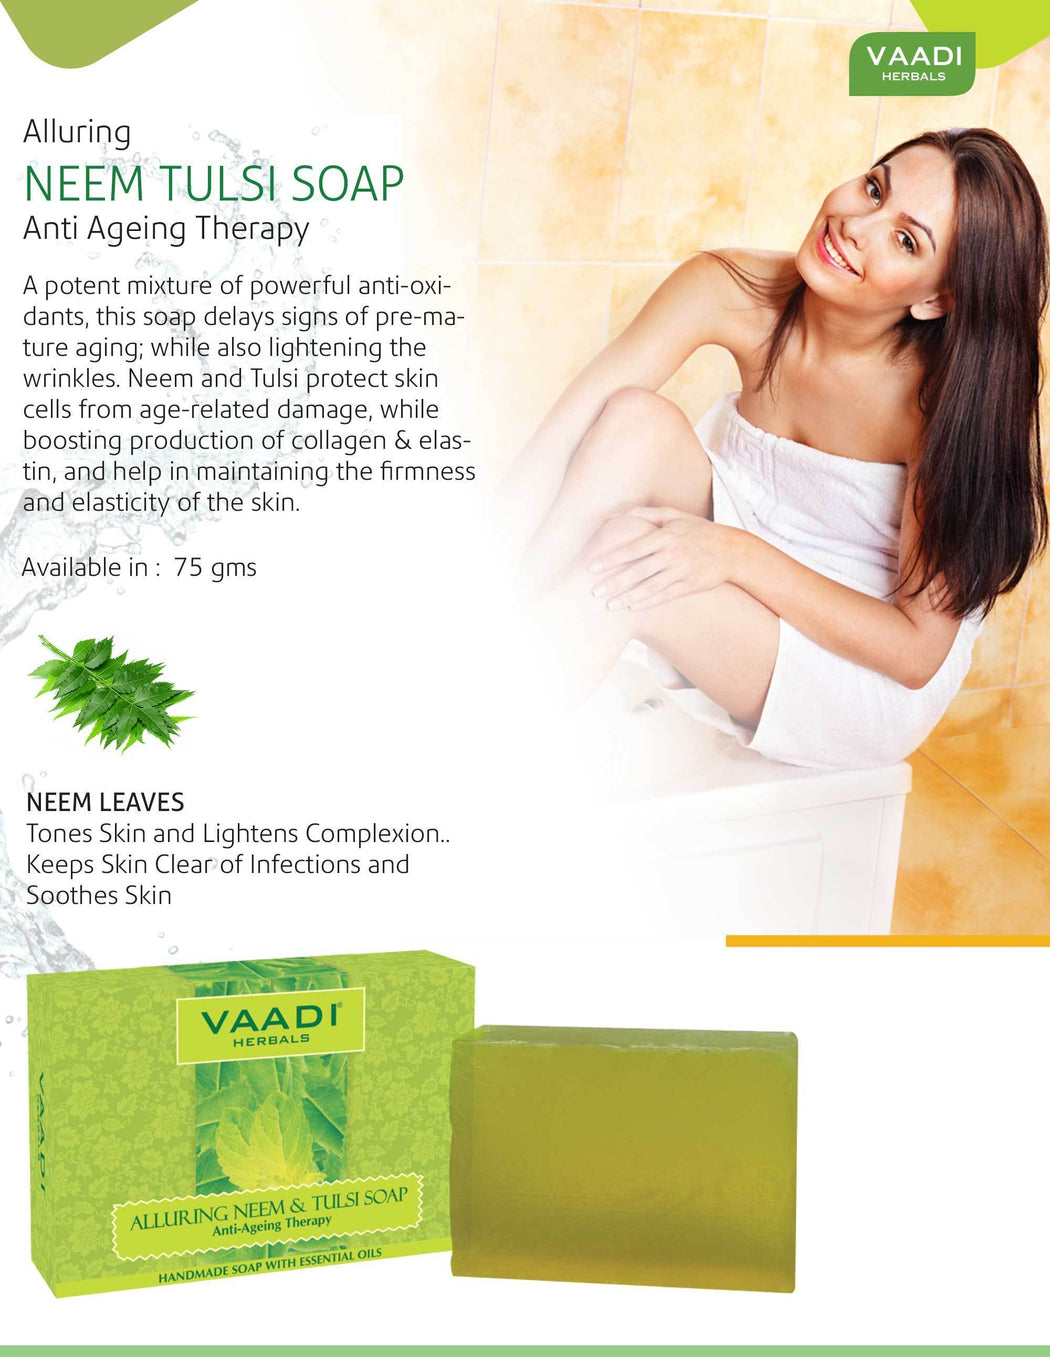 Organic Alluring Neem Tulsi Soap with Aloe Vera, Vitamin E & Tea Tree Oil - Prevents Ageing - Protects Skin (75 gms / 2.7 oz)